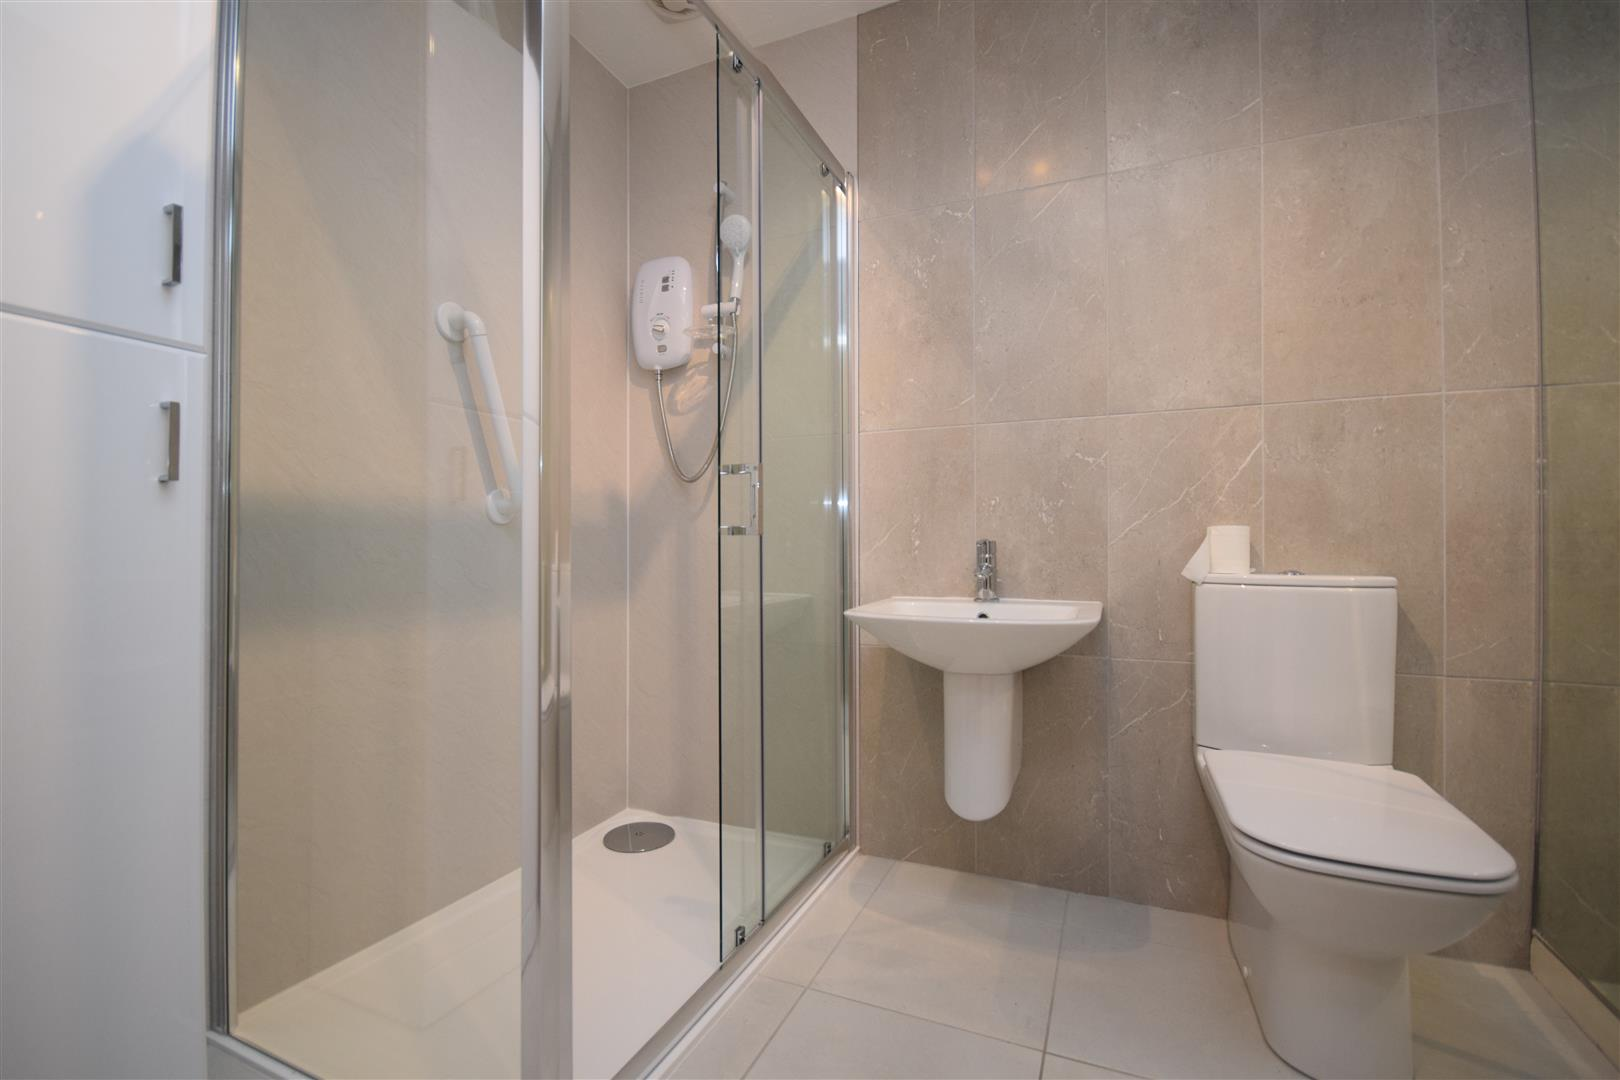 Flat F, 62, Tay Street, Perth, Perthshire, PH2 8NN, UK